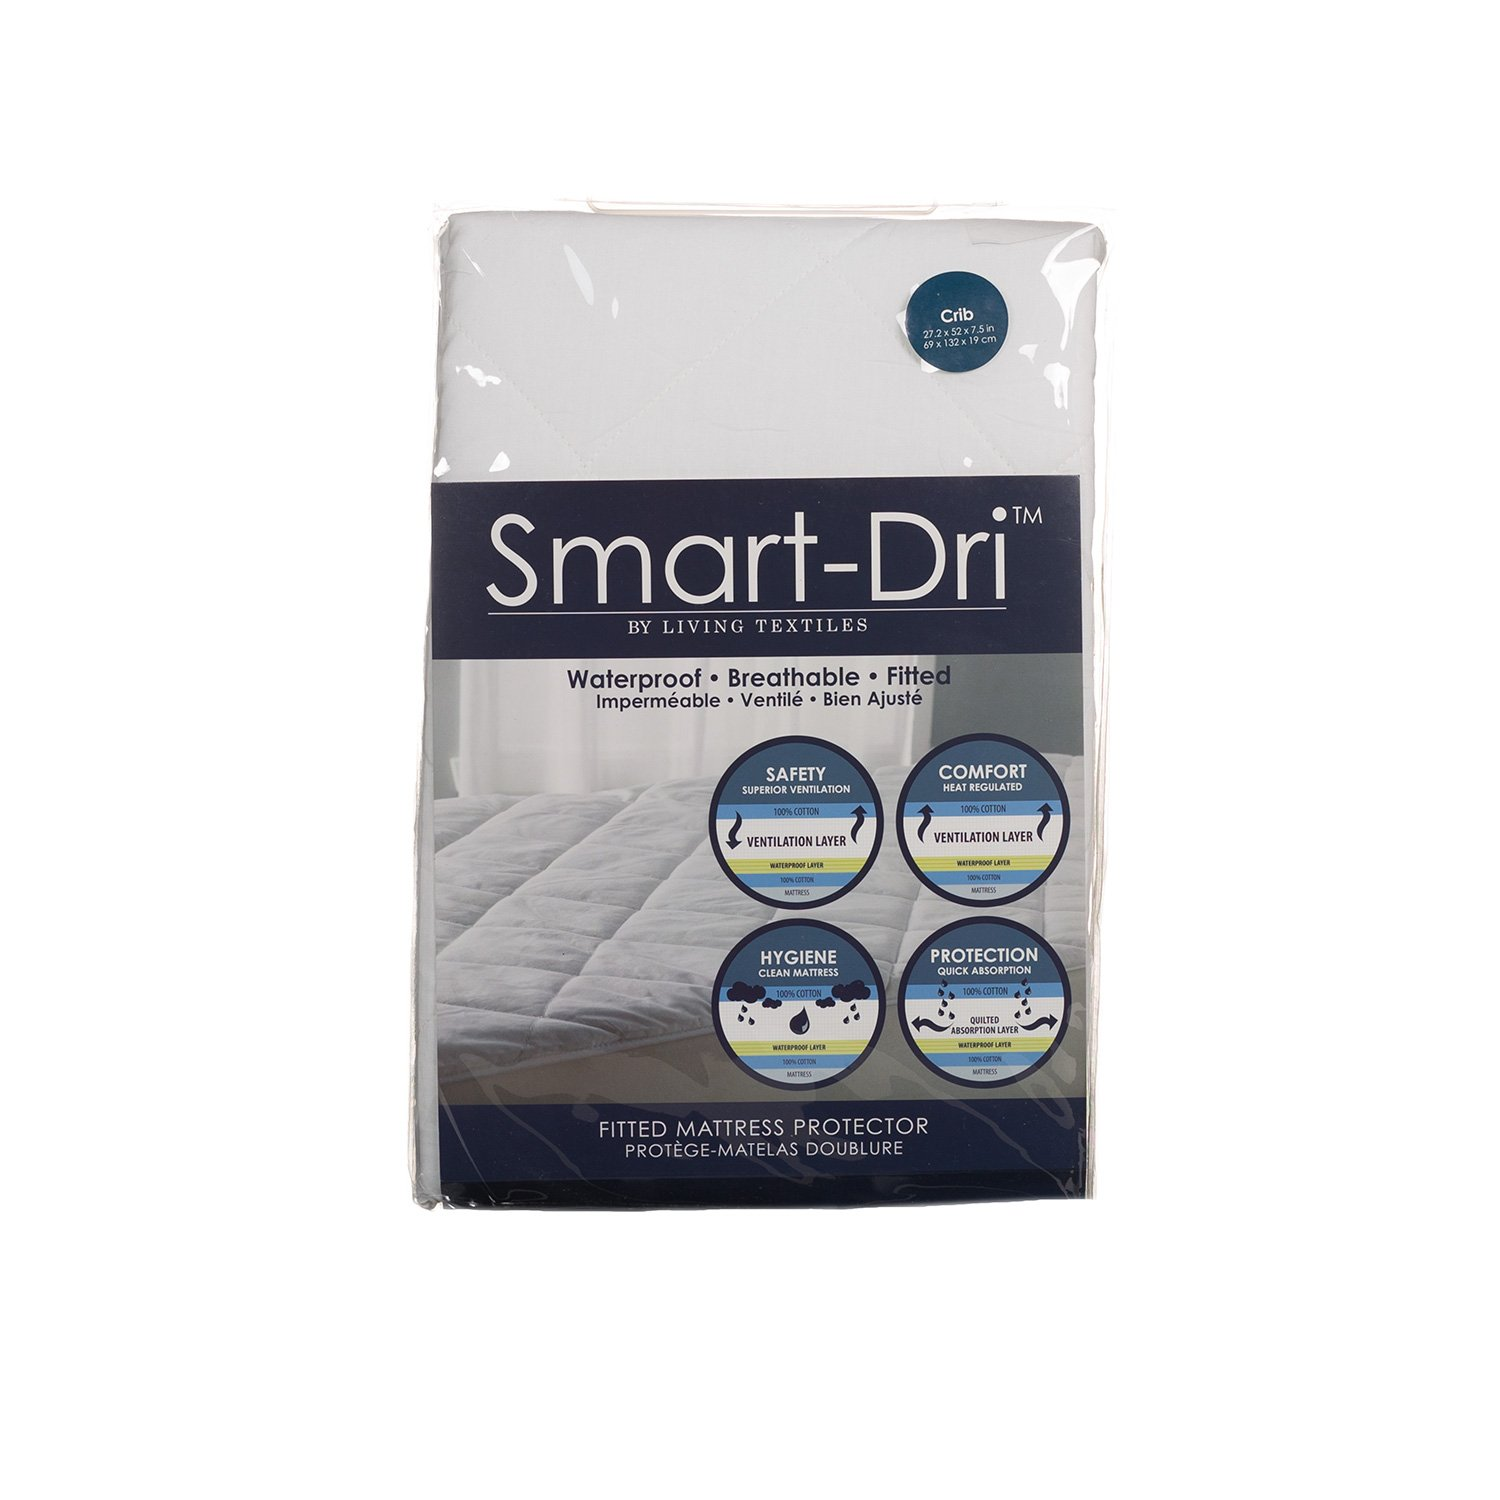 Living Textiles Smart-Dri Waterproof Mattress Protector – Crib – Award Winning Mattress Protector,Cotton Shell, Fully Elasticized, Non-Toxic Polyurethane Lining. Living 63 9910251